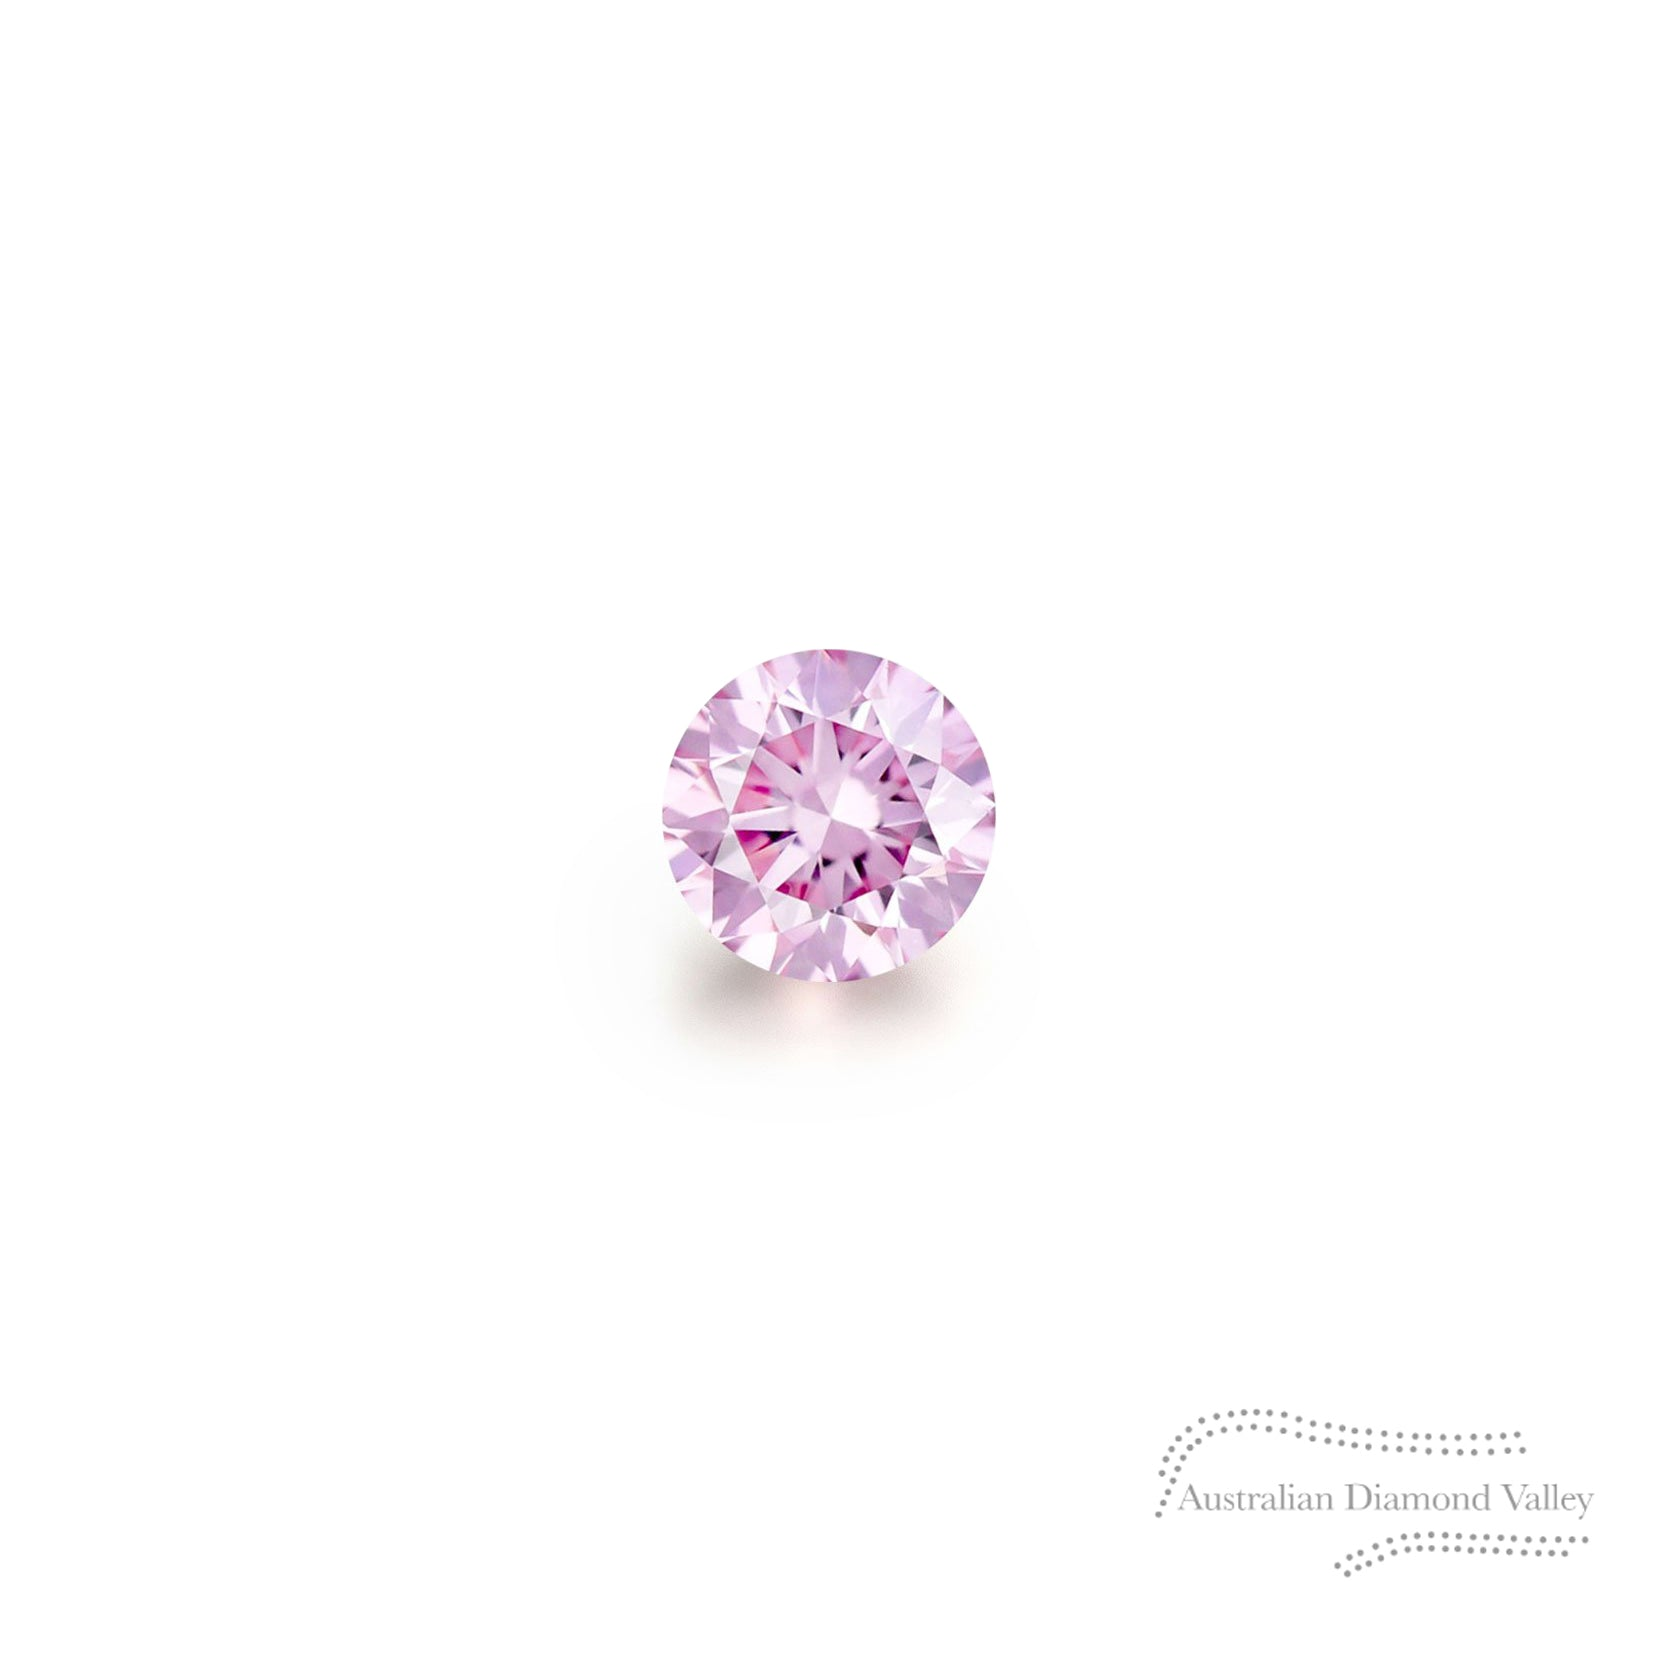 .01ct Authentic Australian Pink Argyle Diamond - 6P